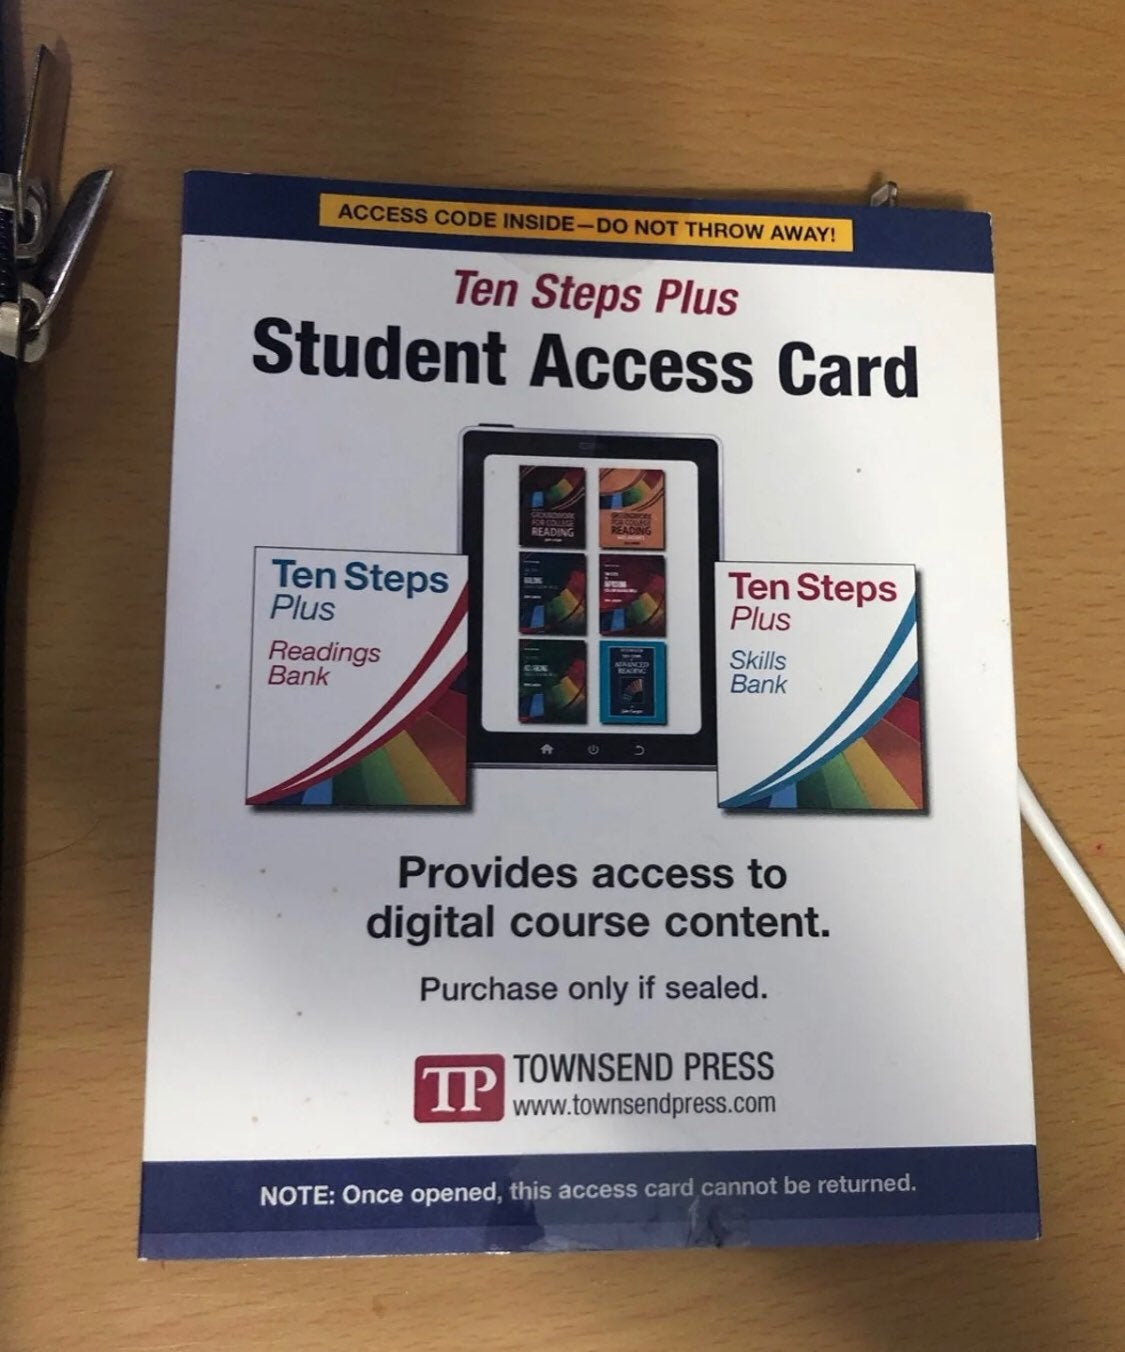 Ten Steps Plus Student Access Card